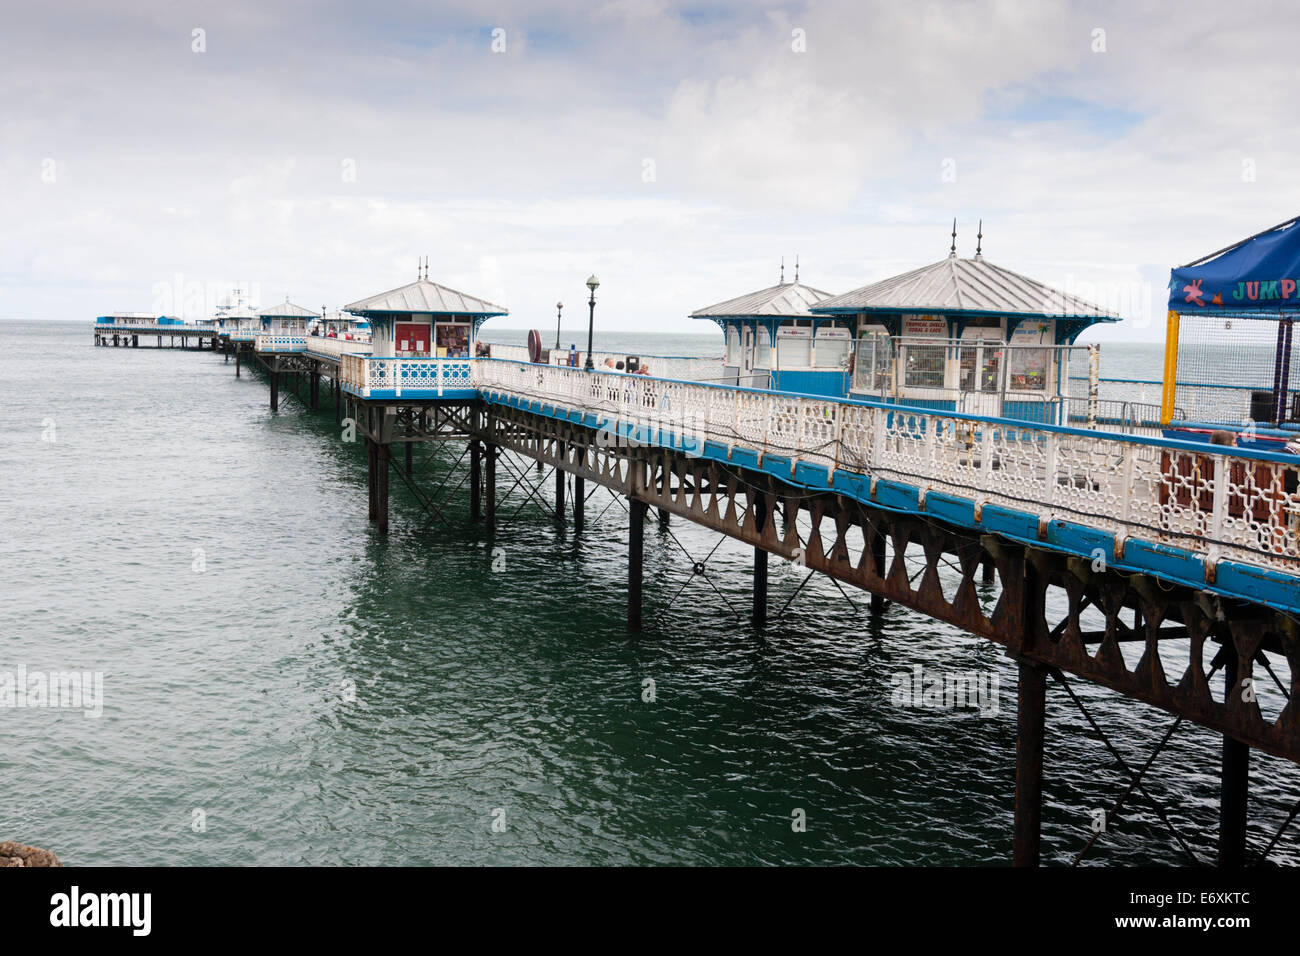 wide-angle-view-of-llandudno-pier-north-wales-E6XKTC.jpg